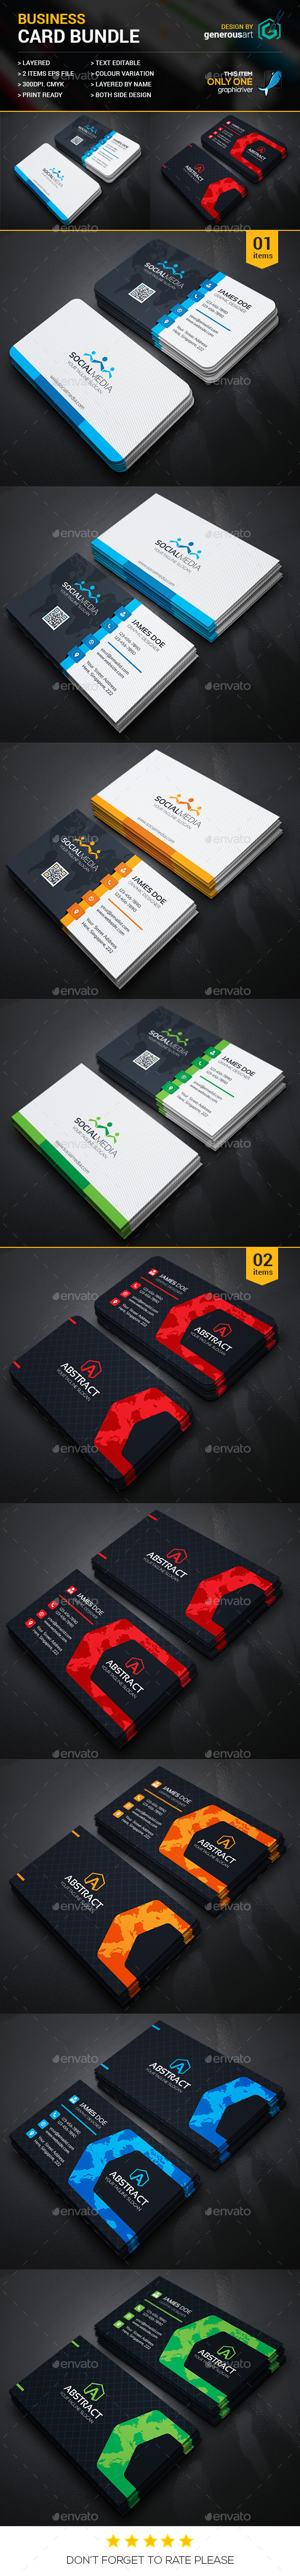 Business Card Bundle 2 in 1 19